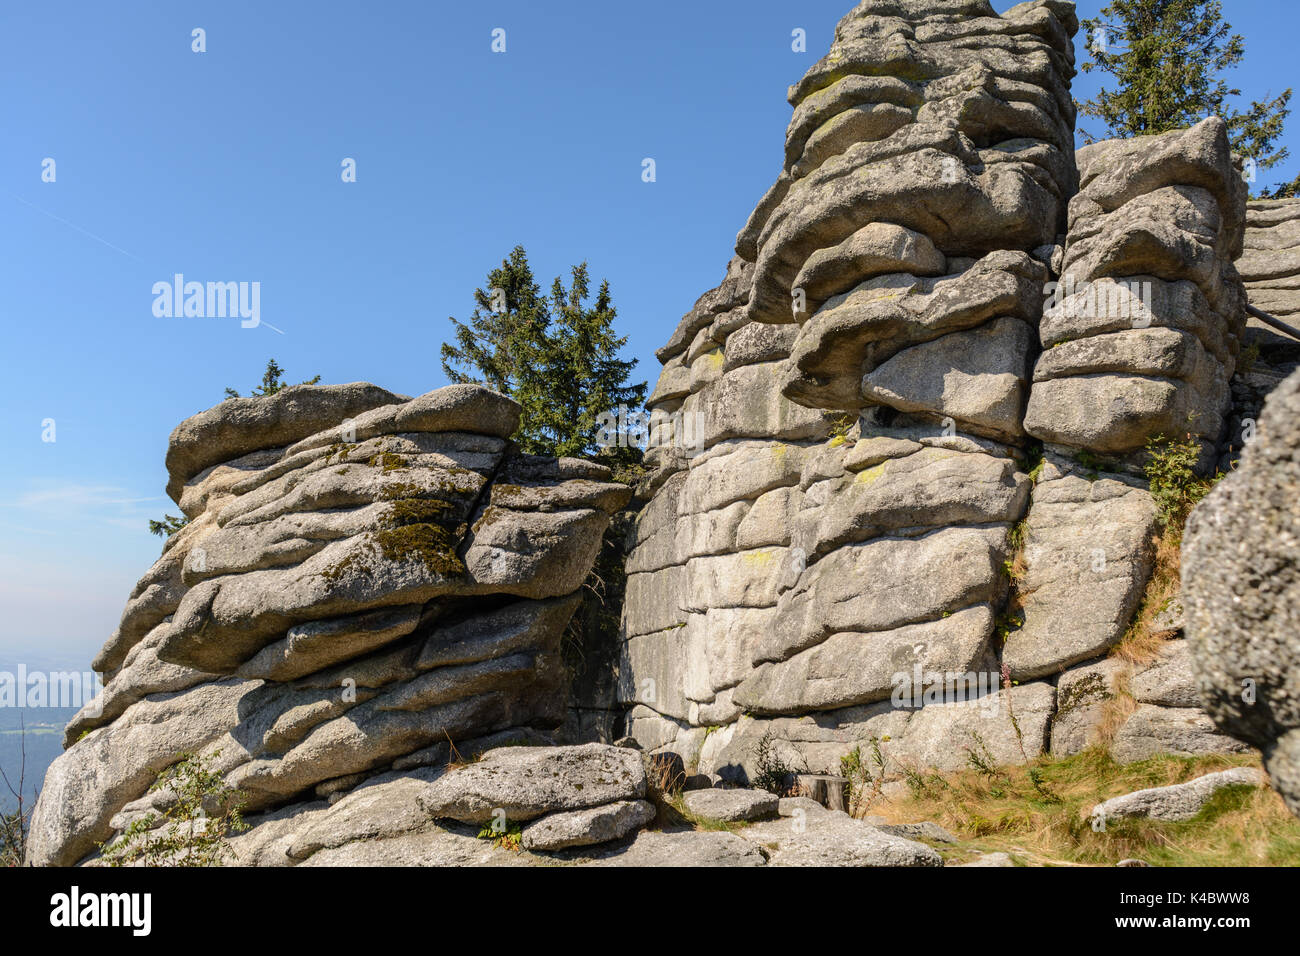 Granites And Boulders In The Nature Reserve Dreisesselberg, Region Where Three Countries Meet - Stock Image